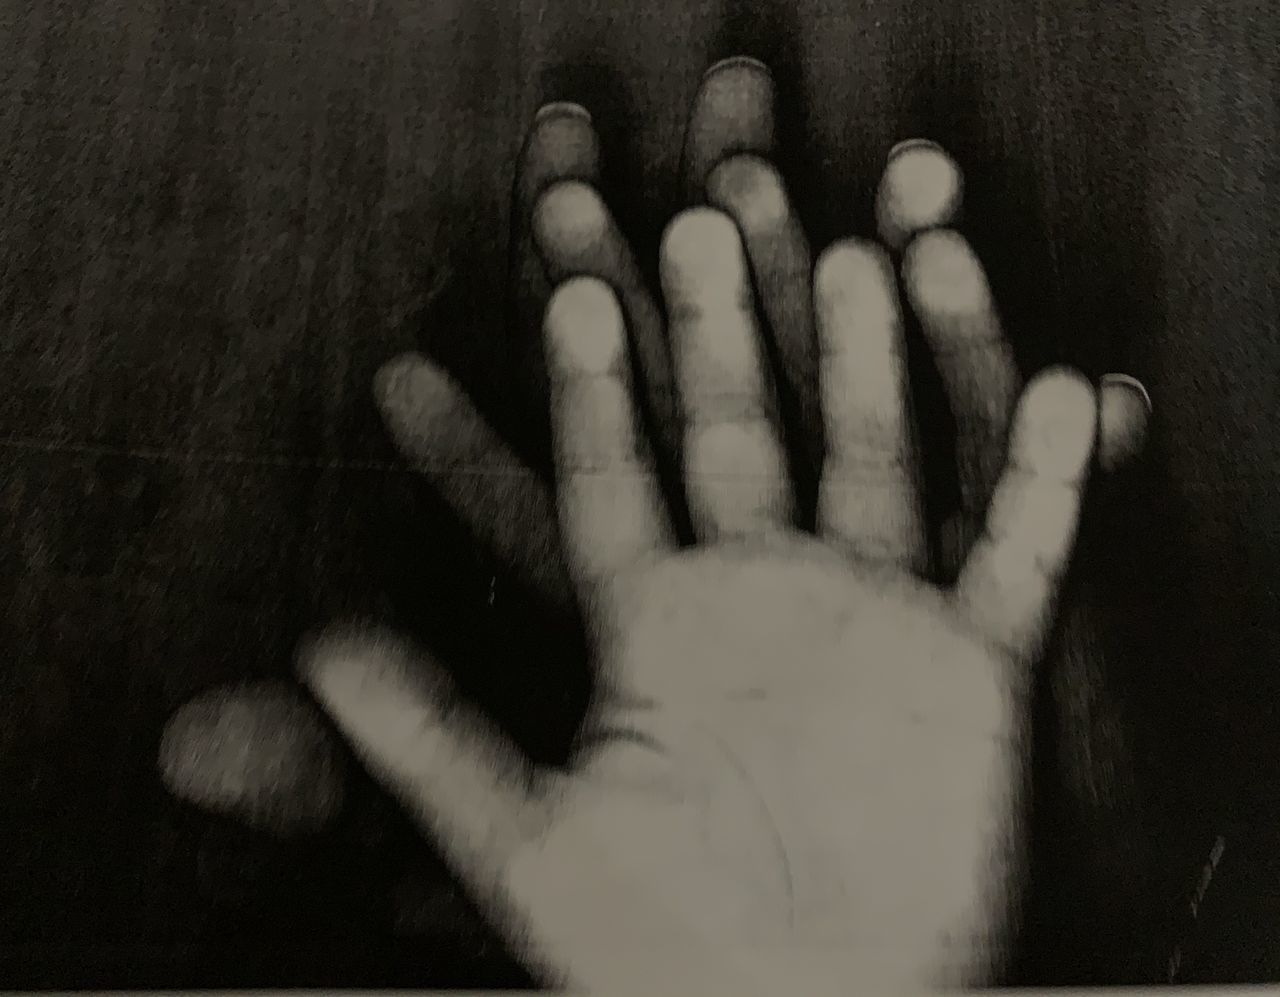 CLOSE-UP OF HANDS ON HUMAN FINGER